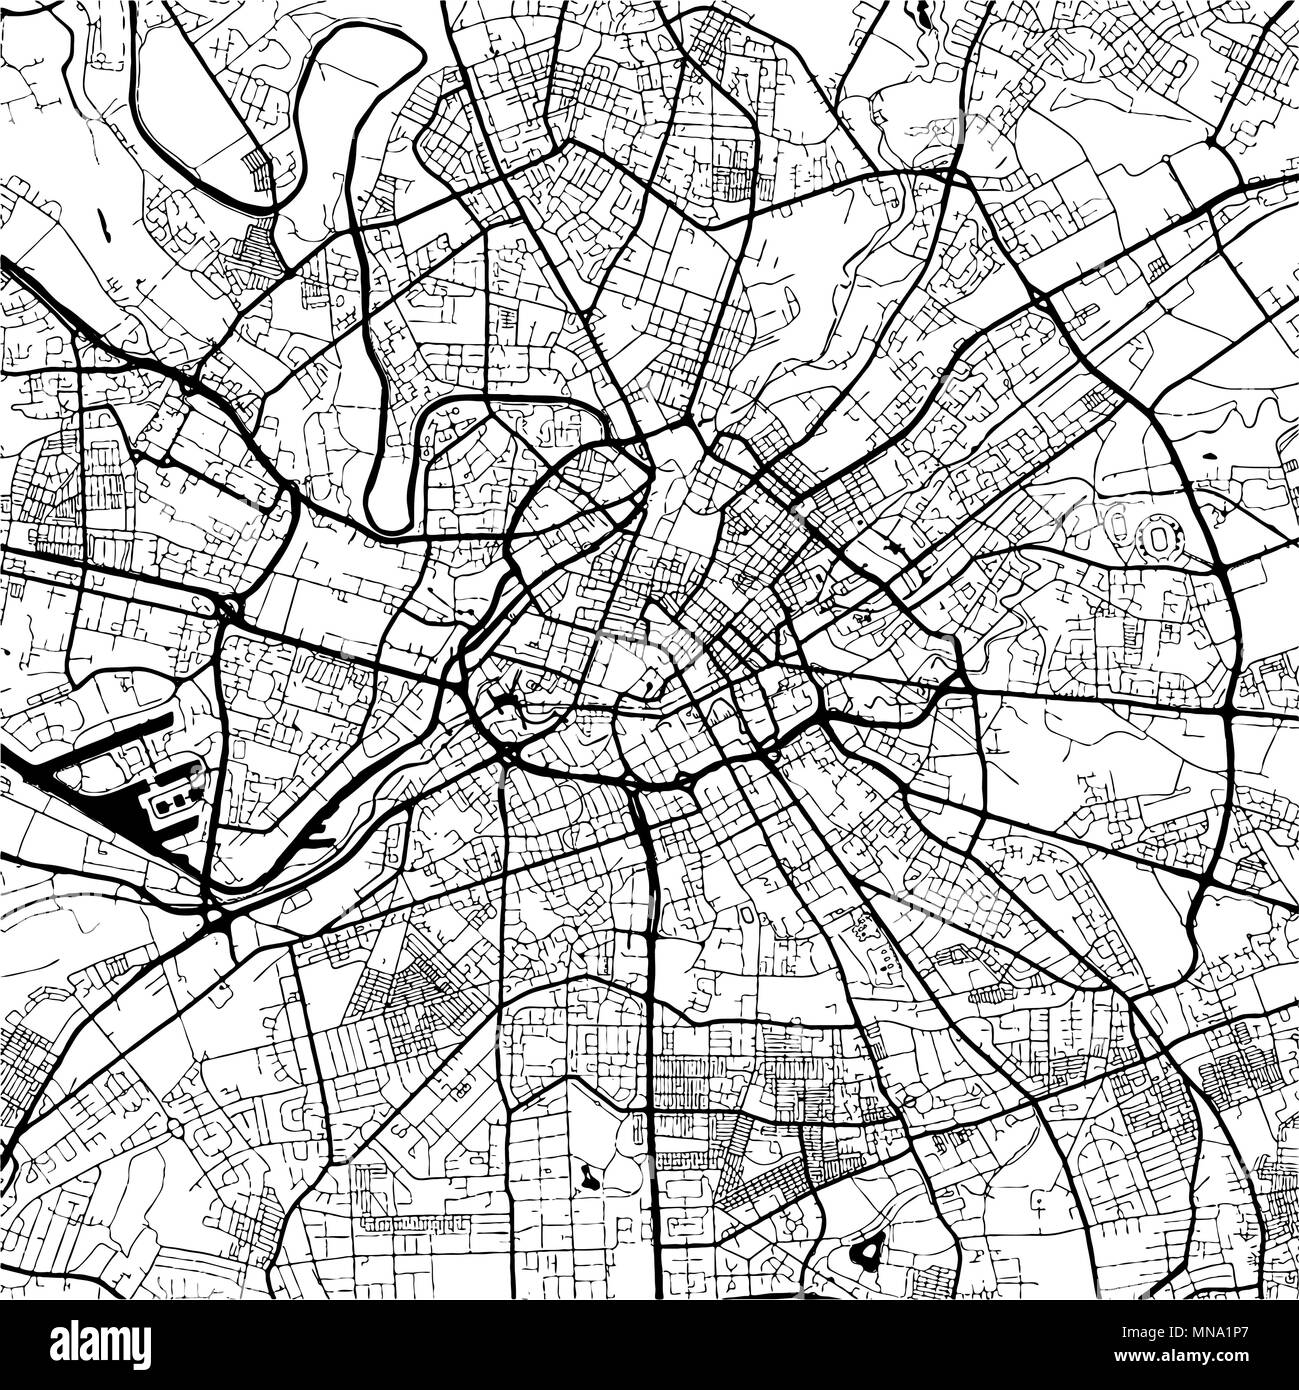 Manchaster, England, Monochrome Map Artprint, Vector Outline Version, ready for color change, Separated On White - Stock Vector